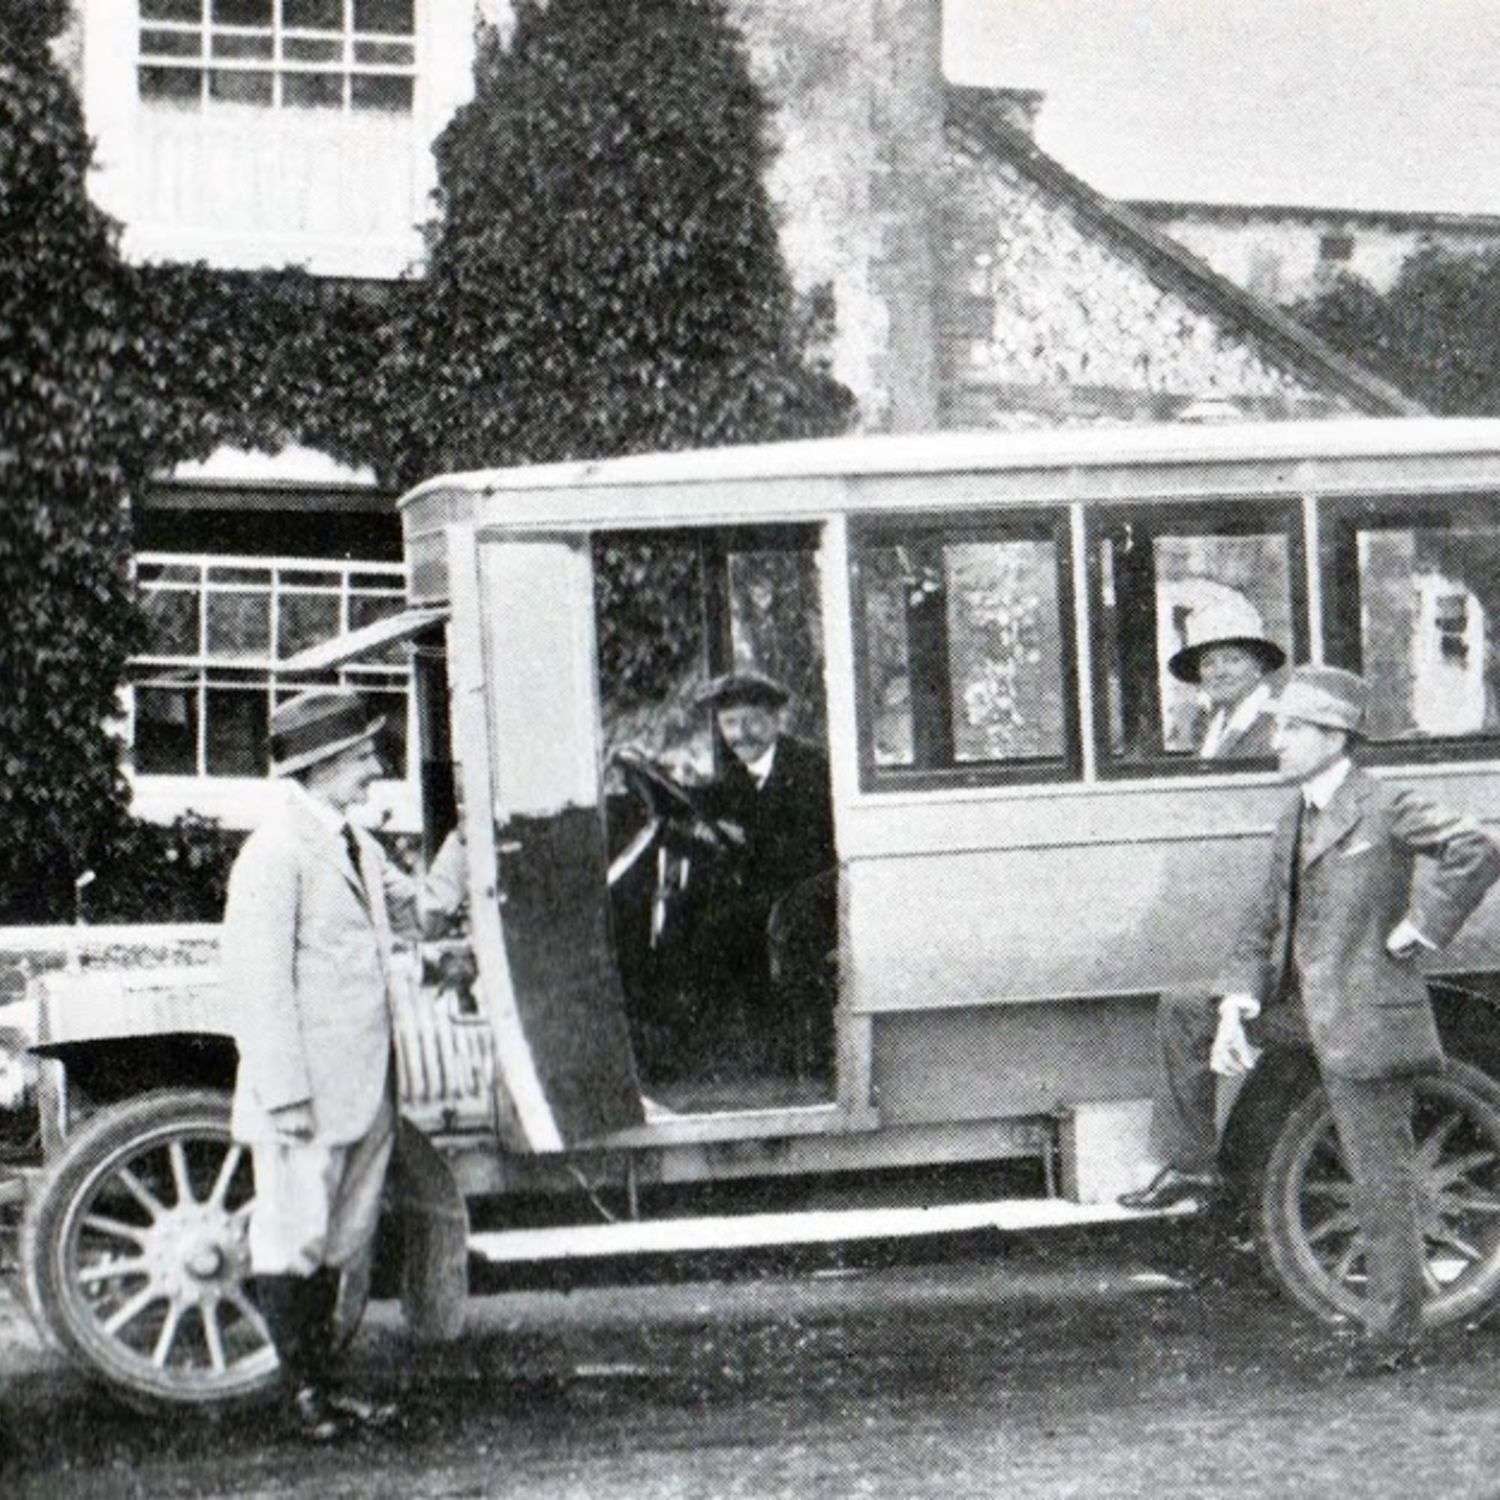 The Club Bus in 1913. On the left is Major E.B. Hales, Secretary, right is S.W. Nodes, Club Captain